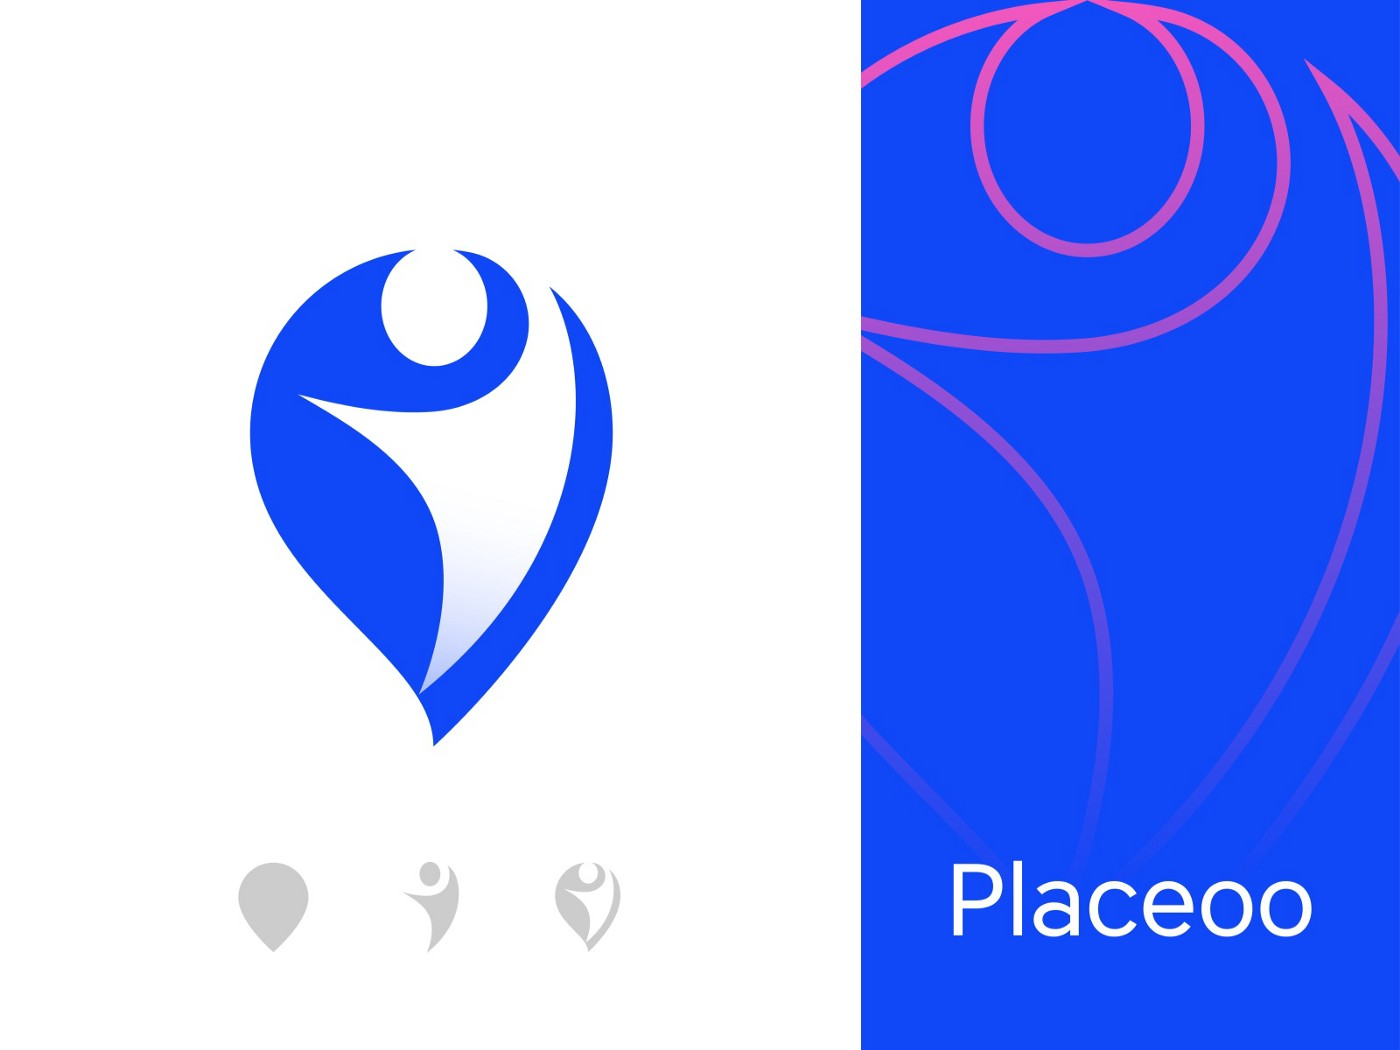 Placeoo Logo Design